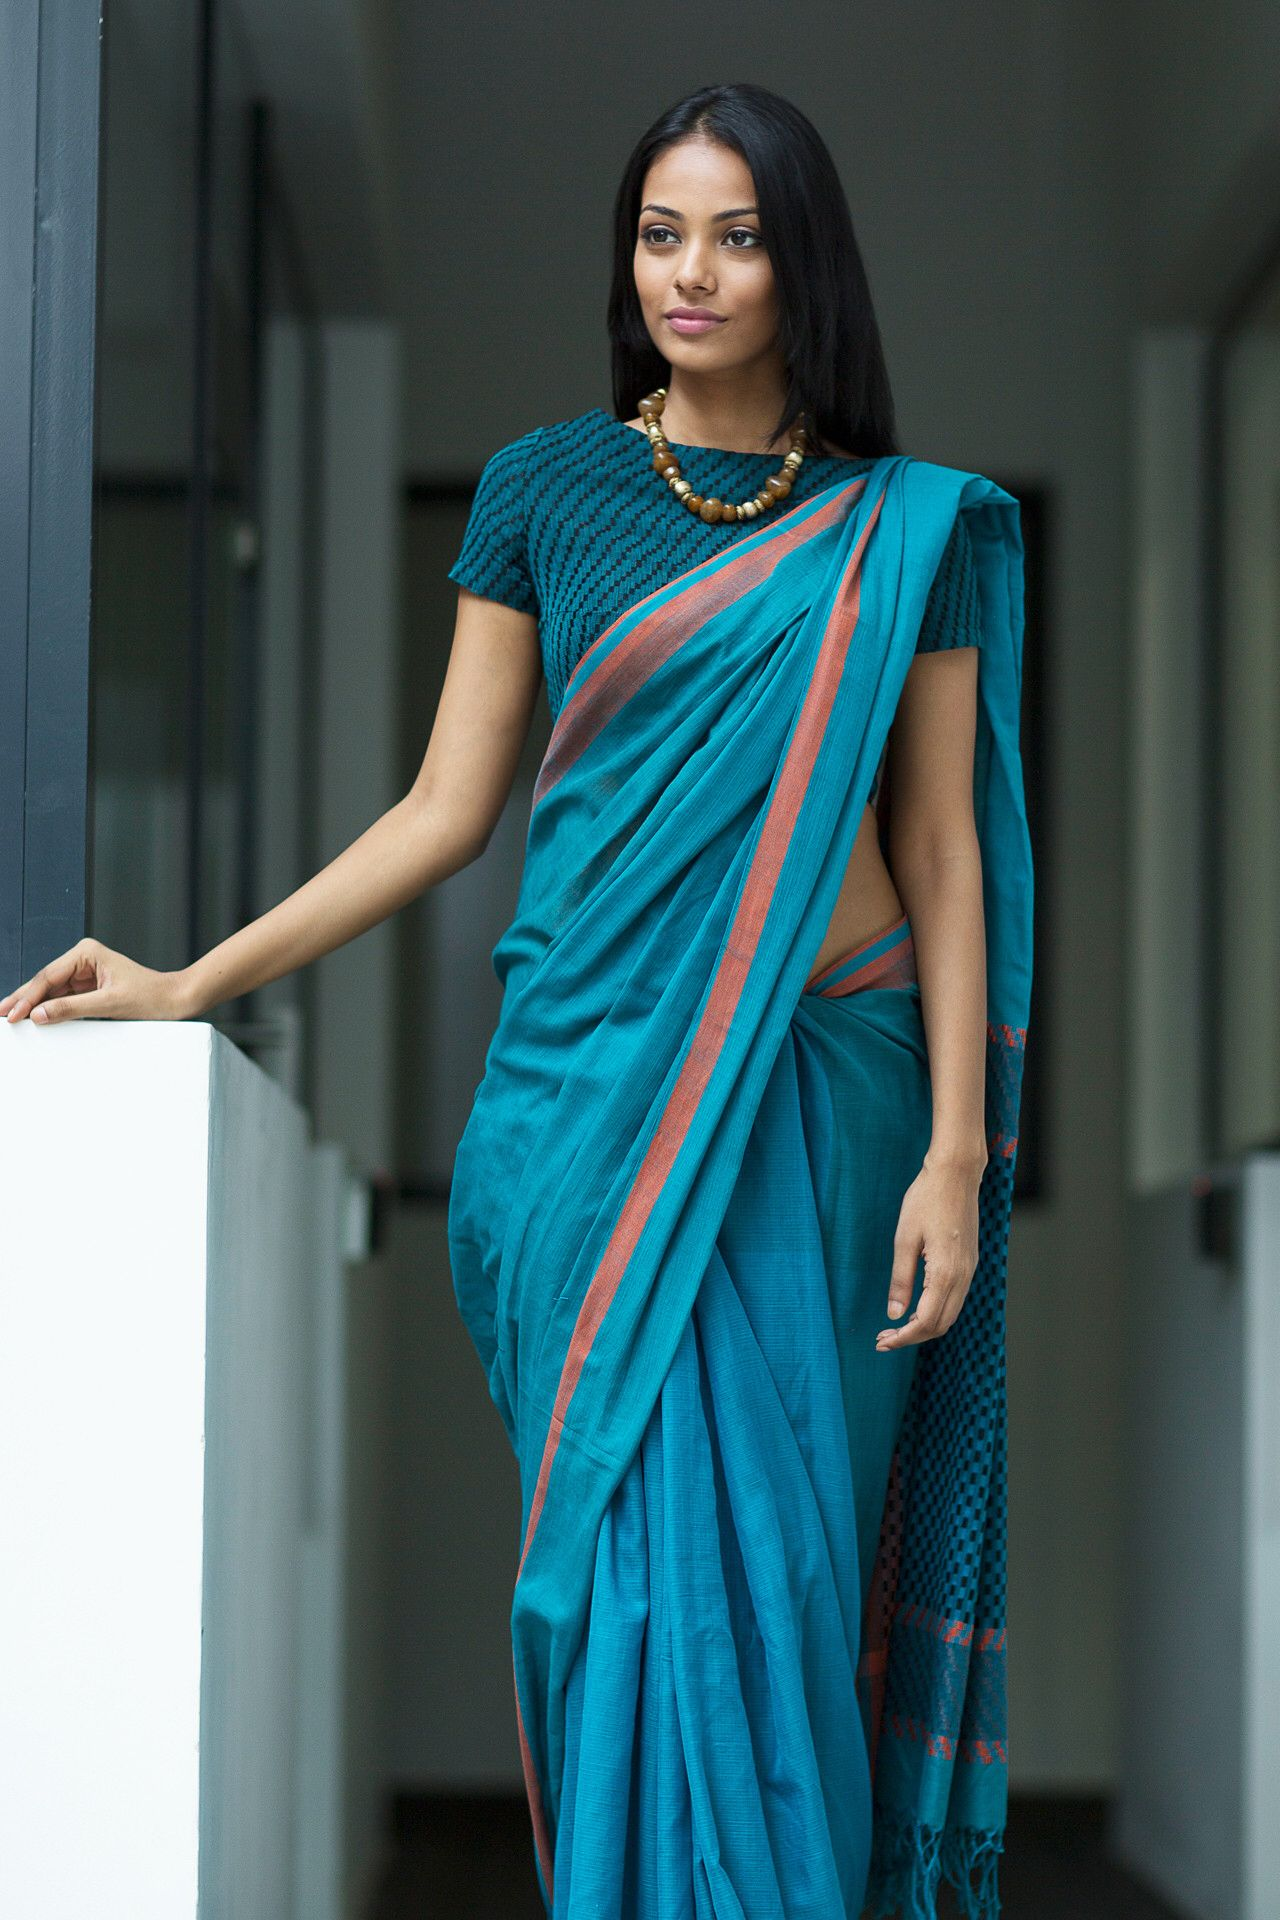 This Saree Is Alluring Simply Fallen In Luv Saree Designs Saree Blouse Designs Elegant Saree